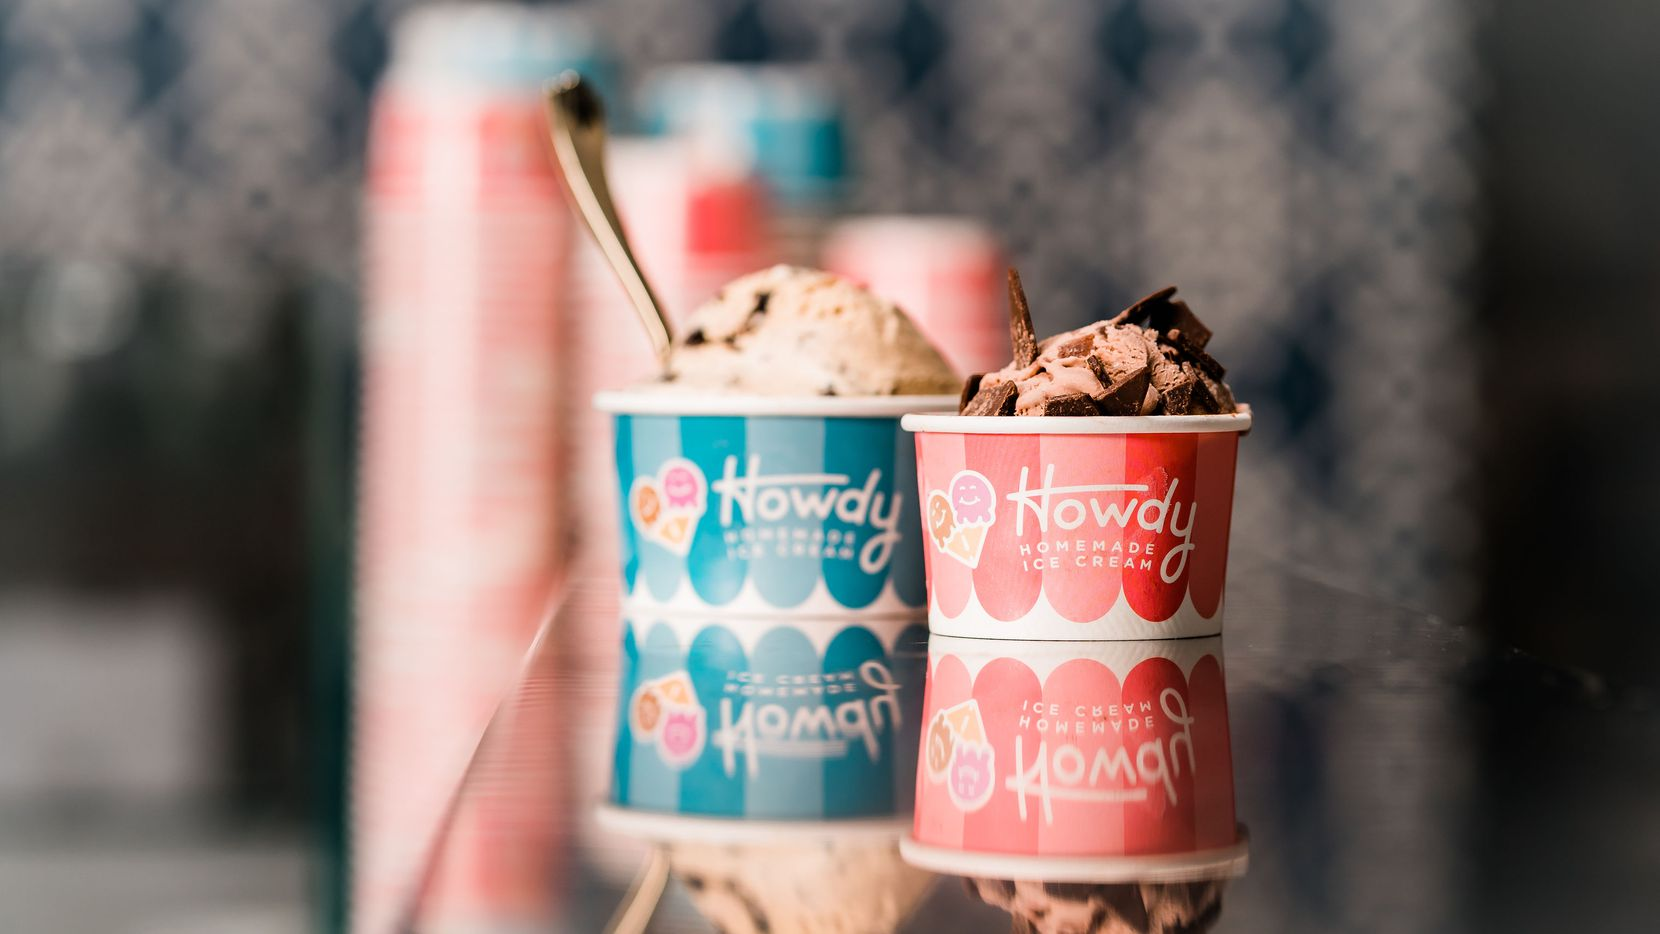 Howdy Homemade Ice Cream is closing on Lovers Lane in University Park on Sept. 9. It is moving to a smaller storefront on Inwood Road with more affordable rent.